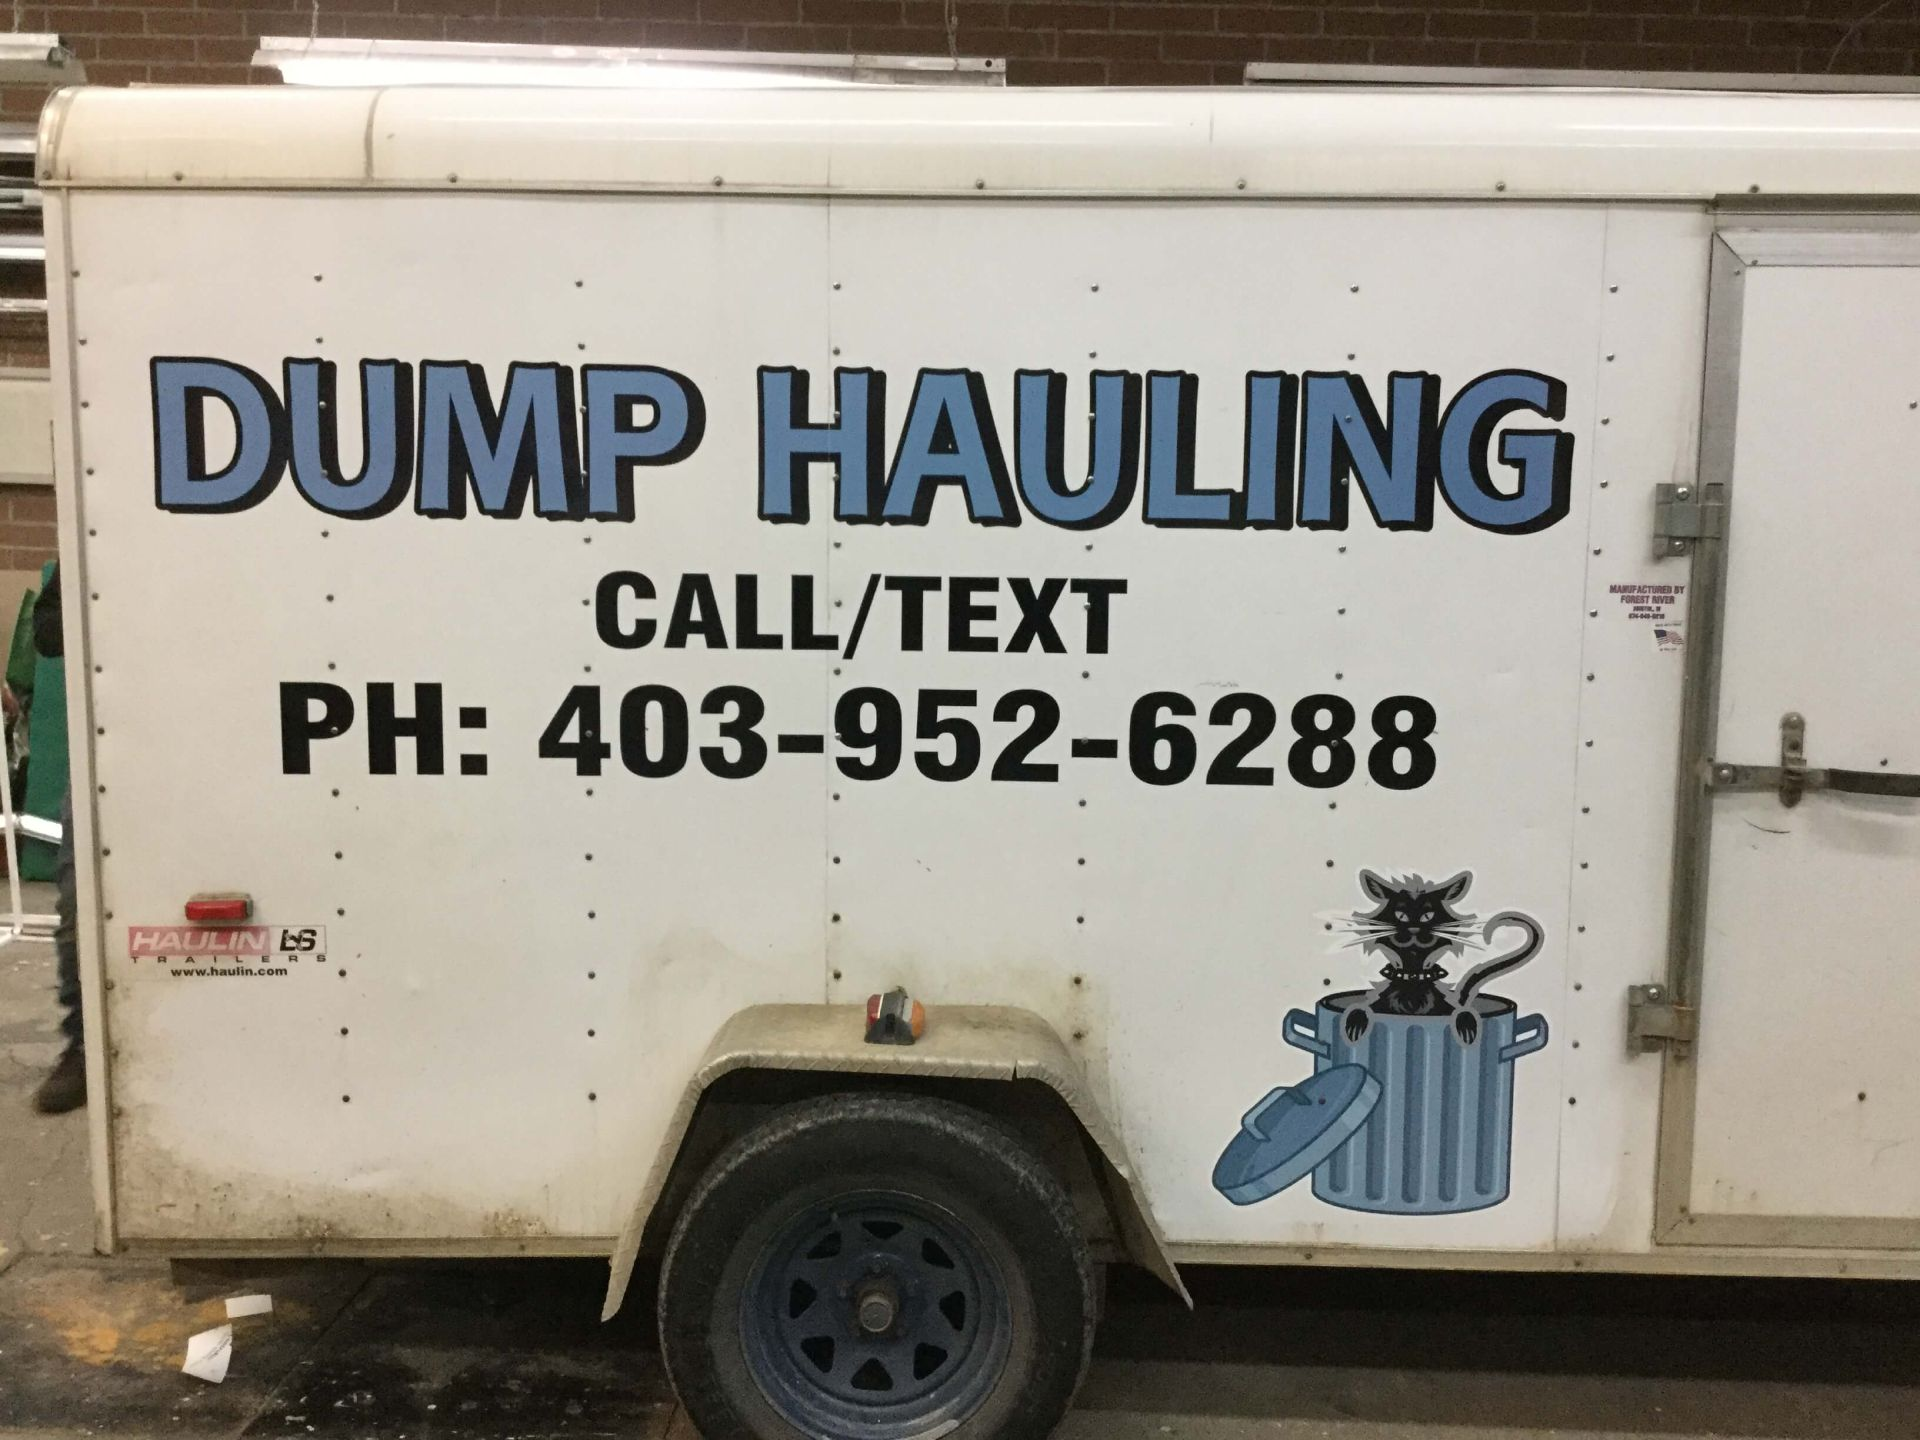 Dump hauling on a trailer